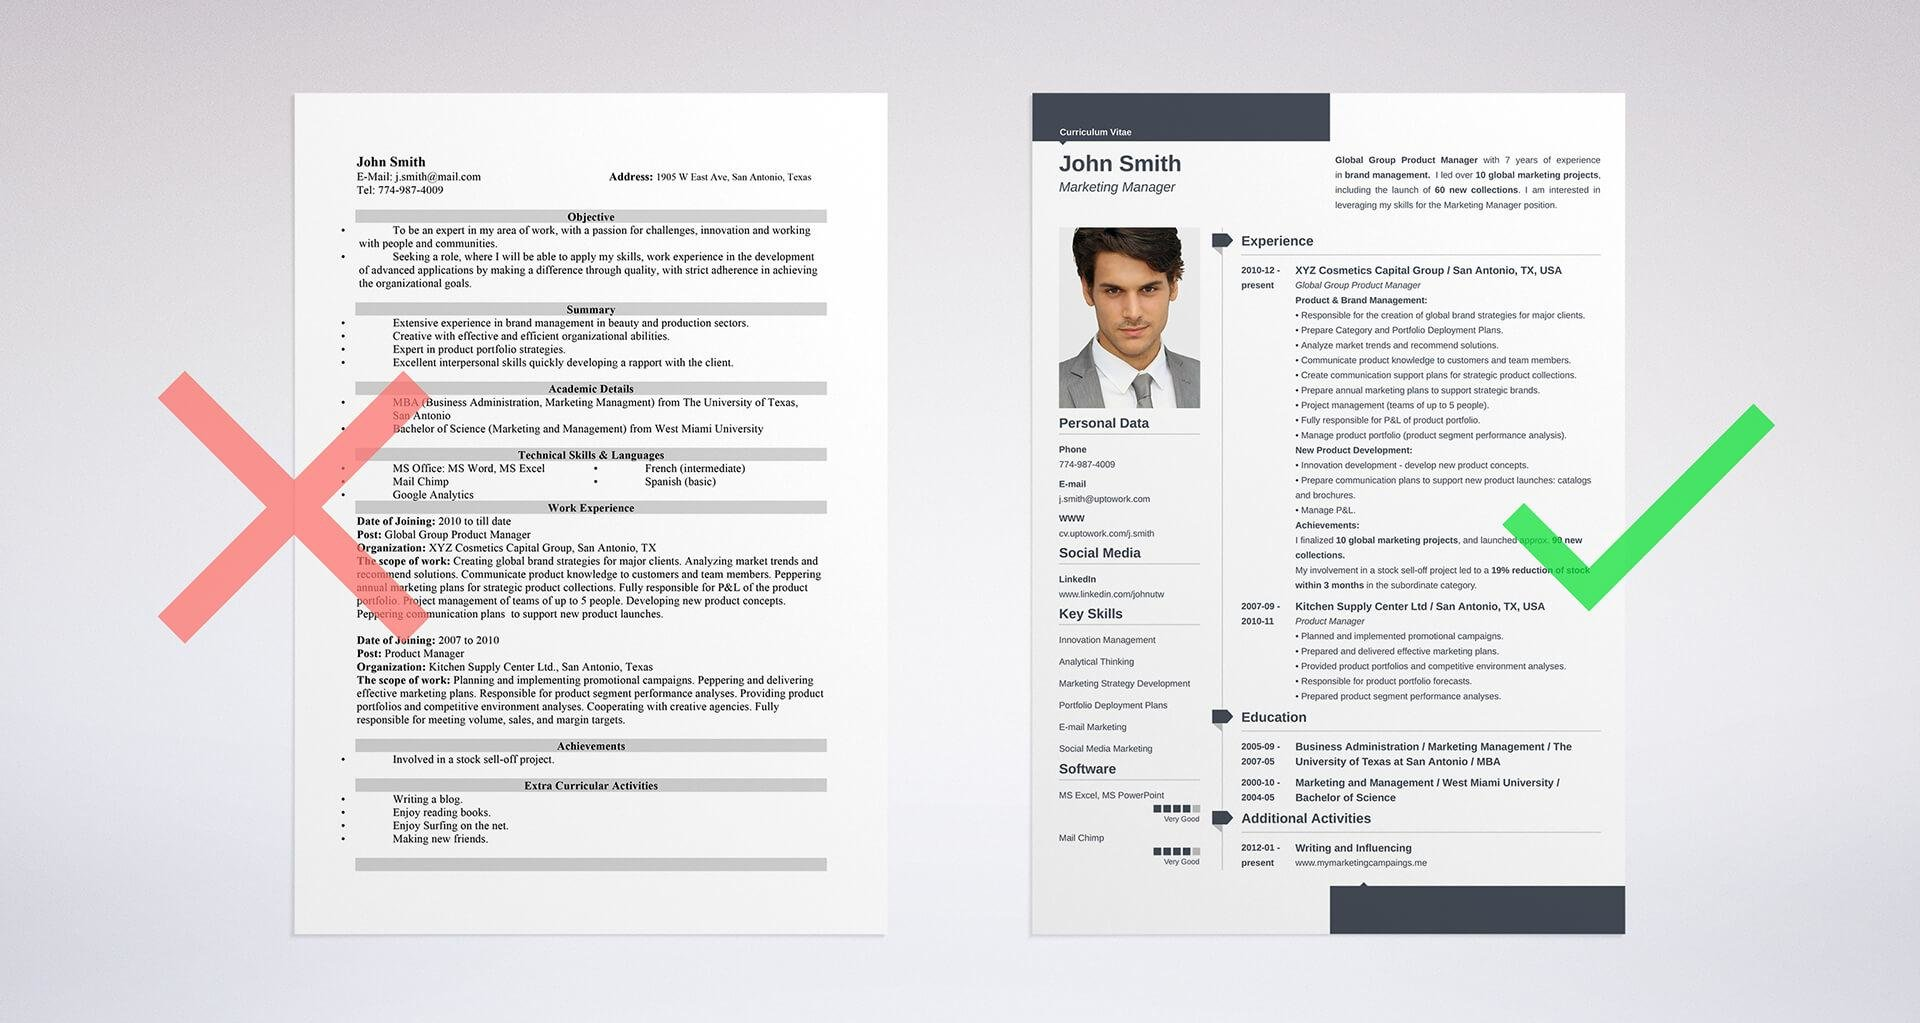 Amazing CV Vs Resume   What Do You Use When You Want To Work Abroad? Idea Curriculum Vitae Vs Resume